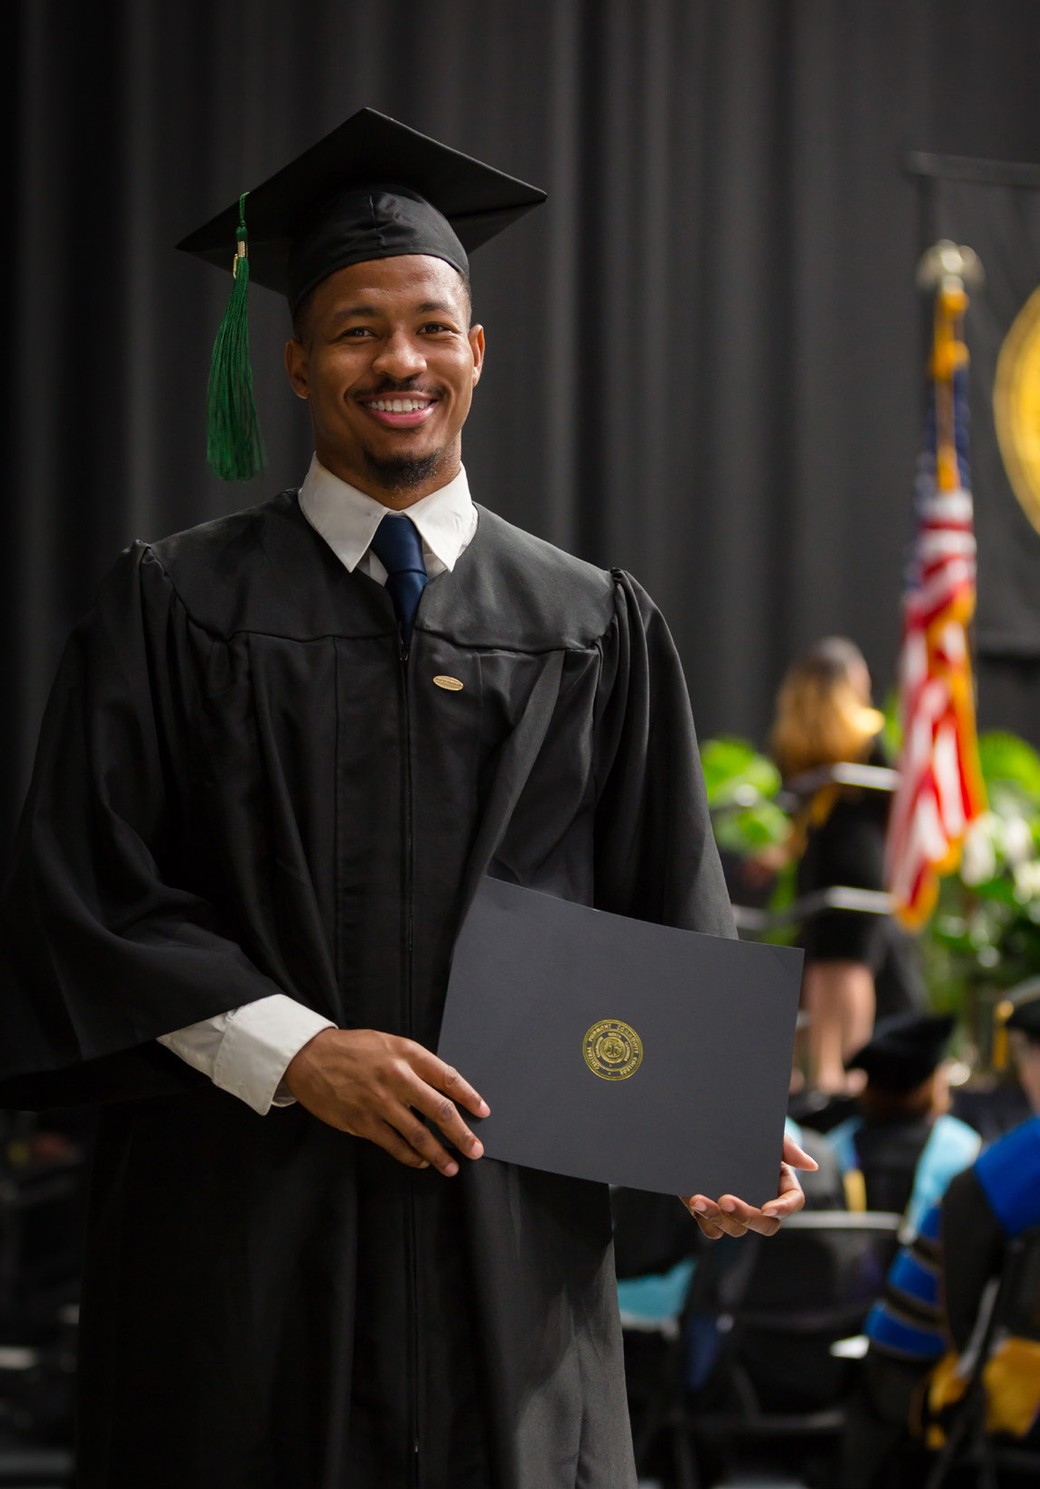 Graduate in cap and gown holding diploma